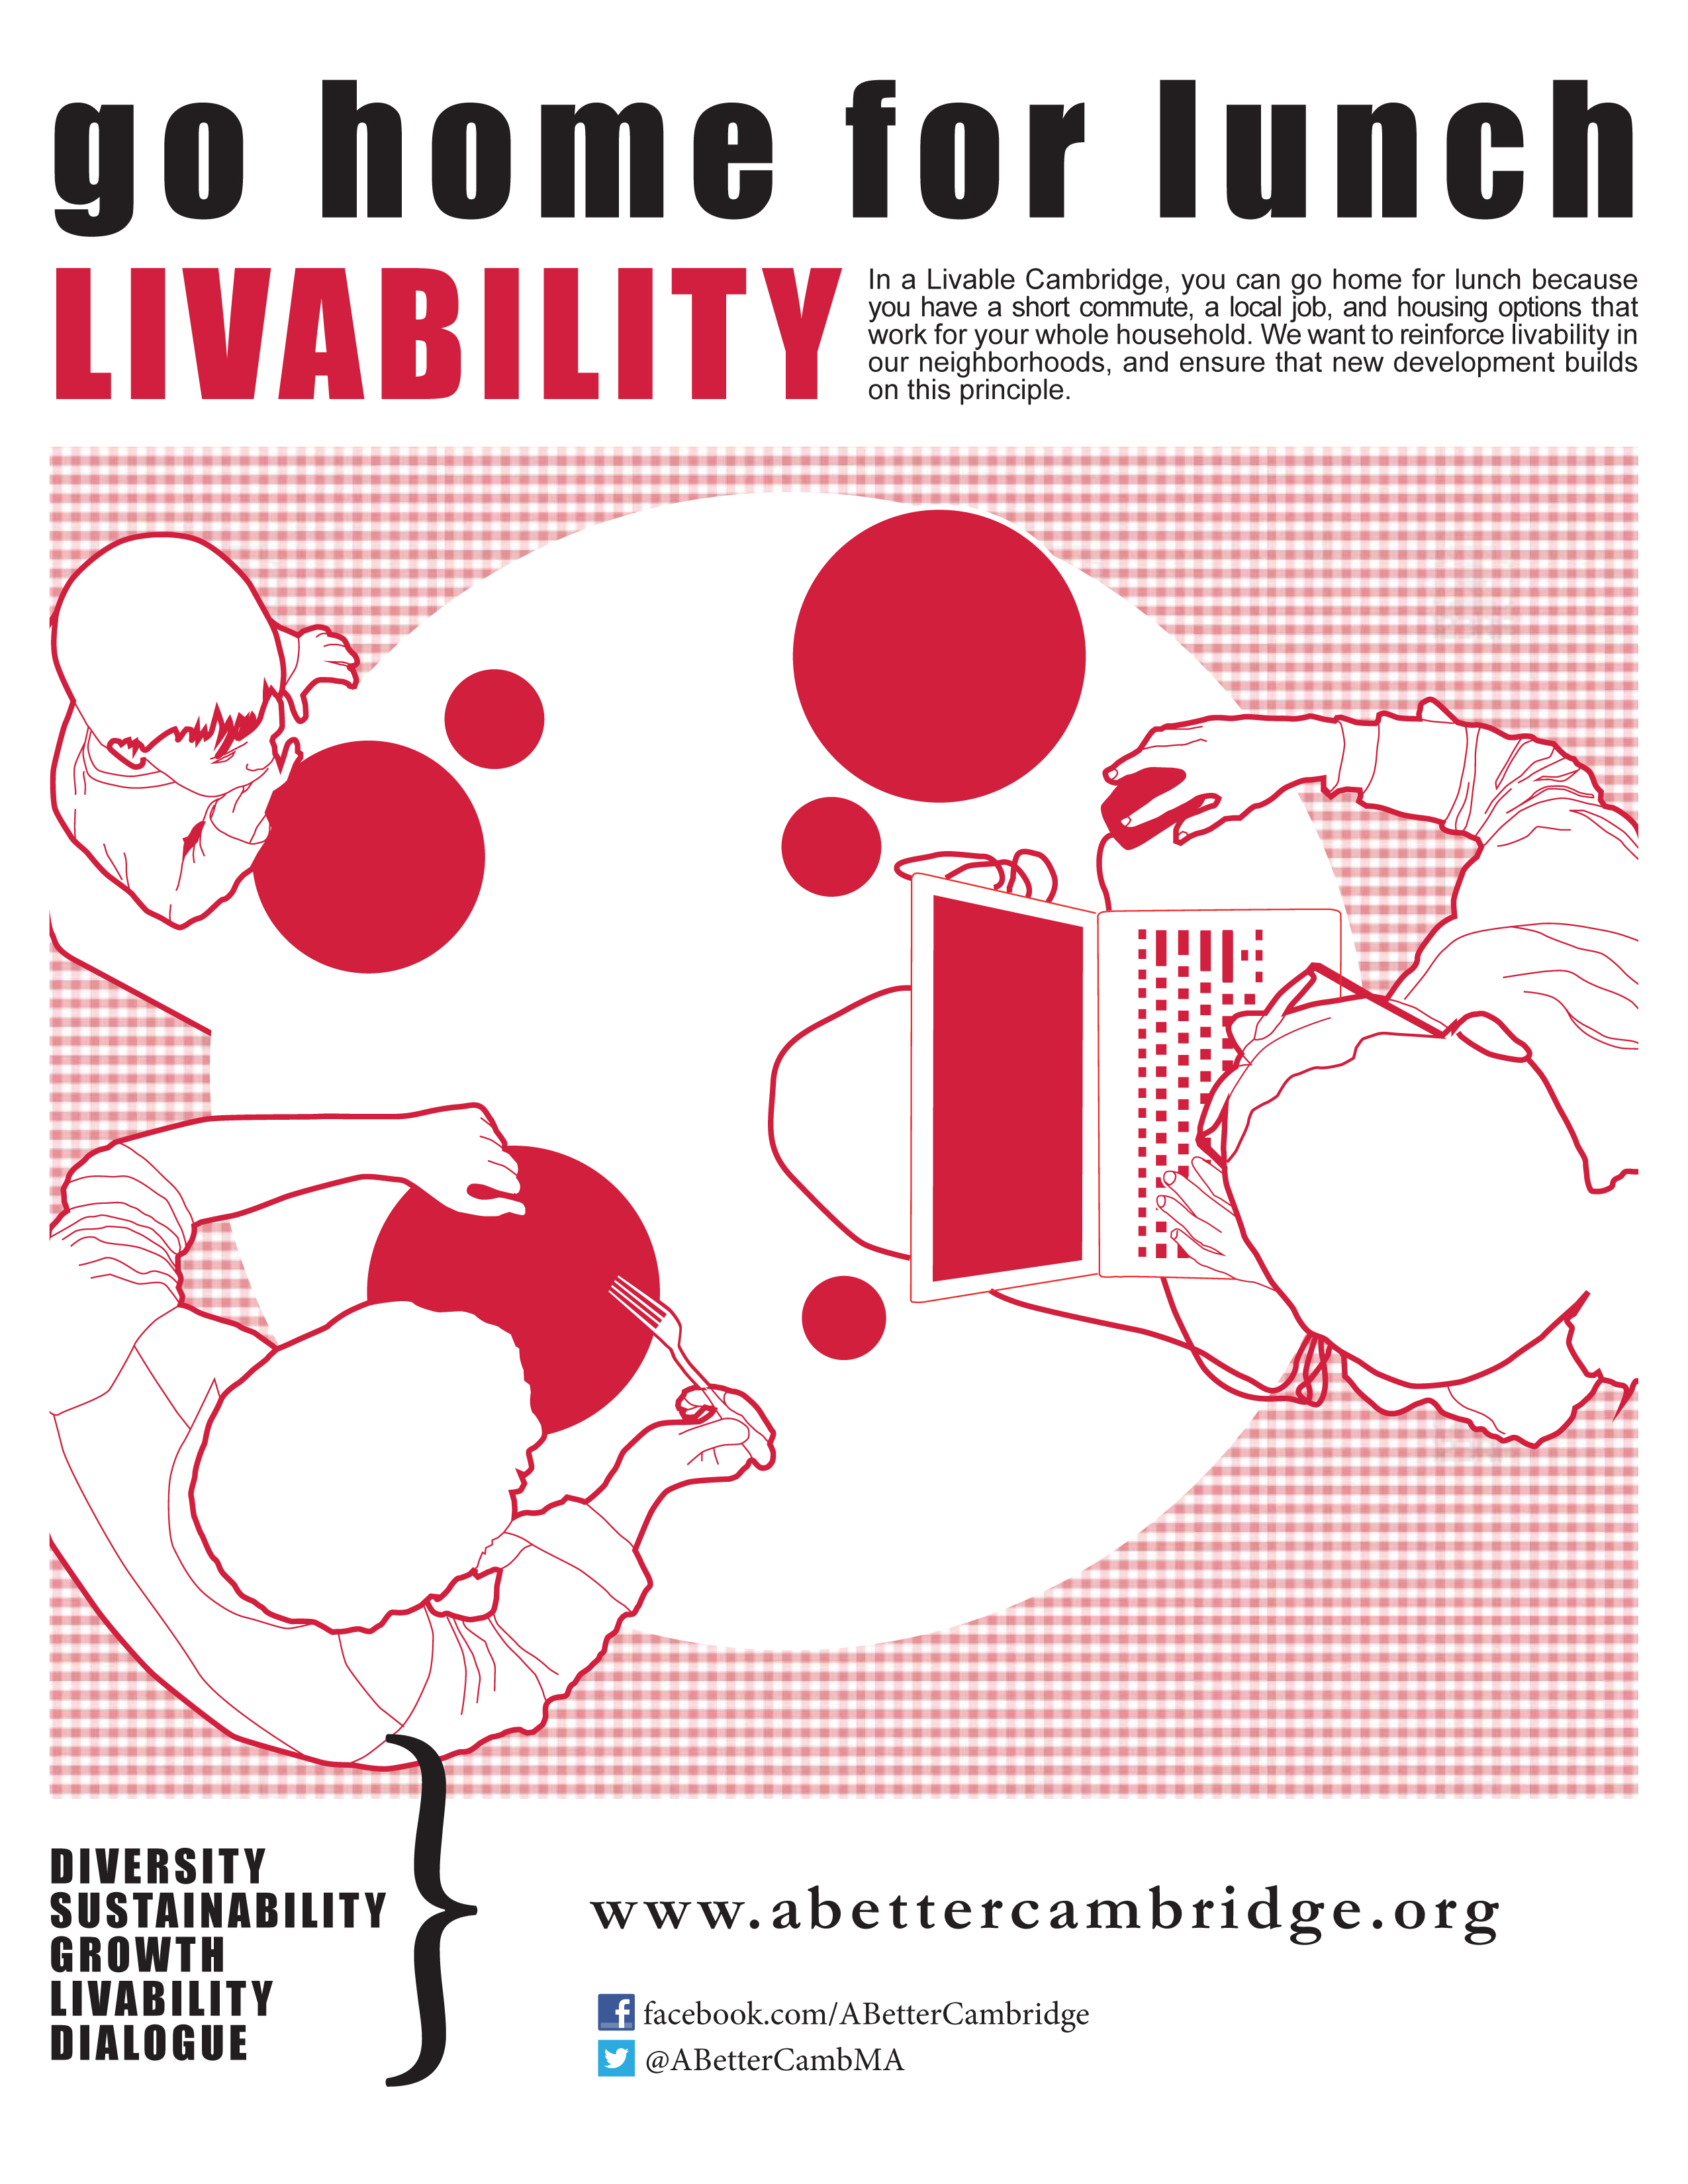 ABC_principles_posters-livability.jpg